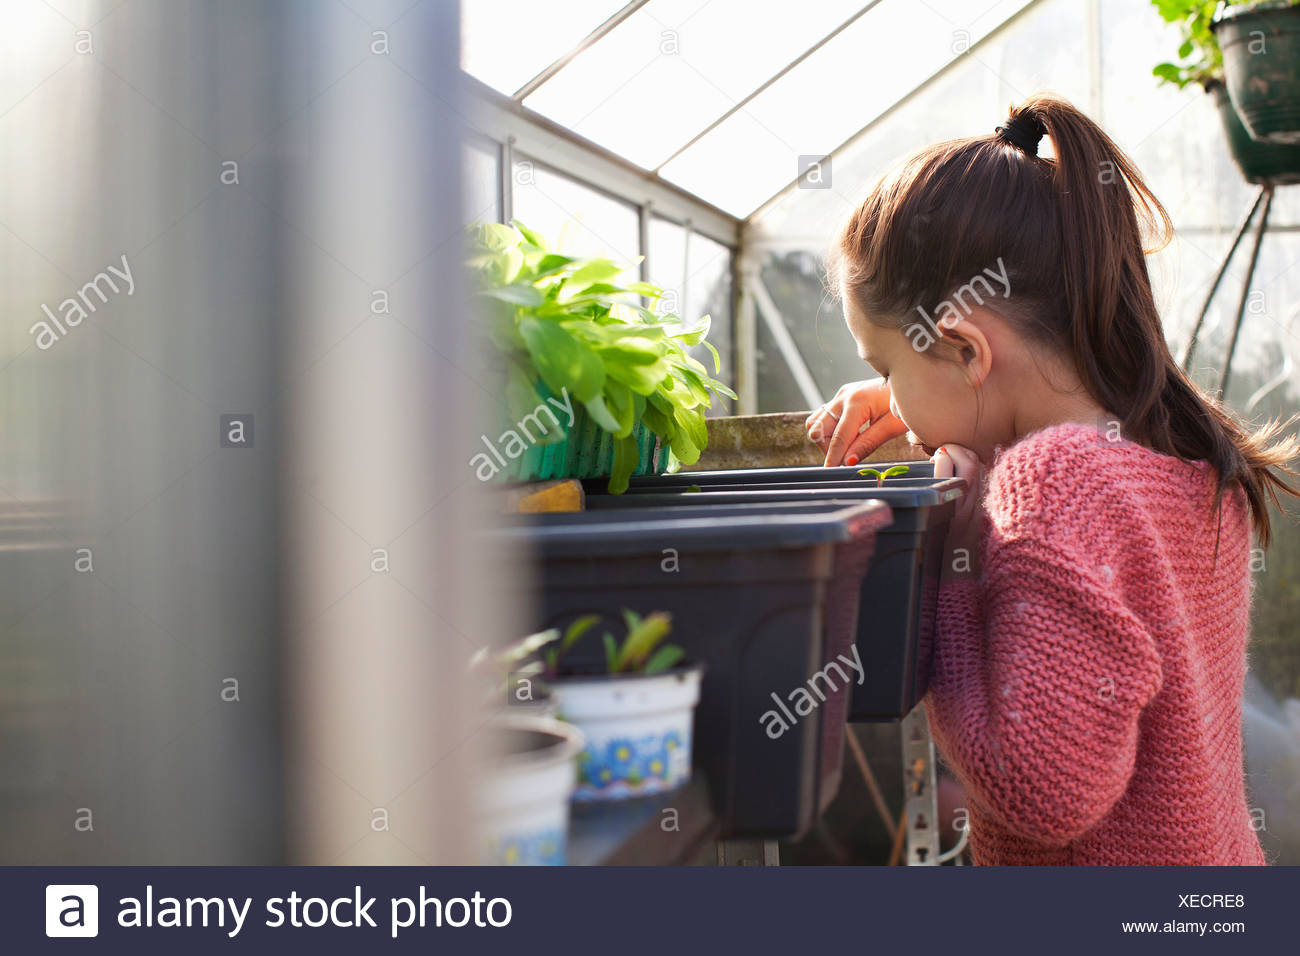 Girl looking at plants - Stock Image